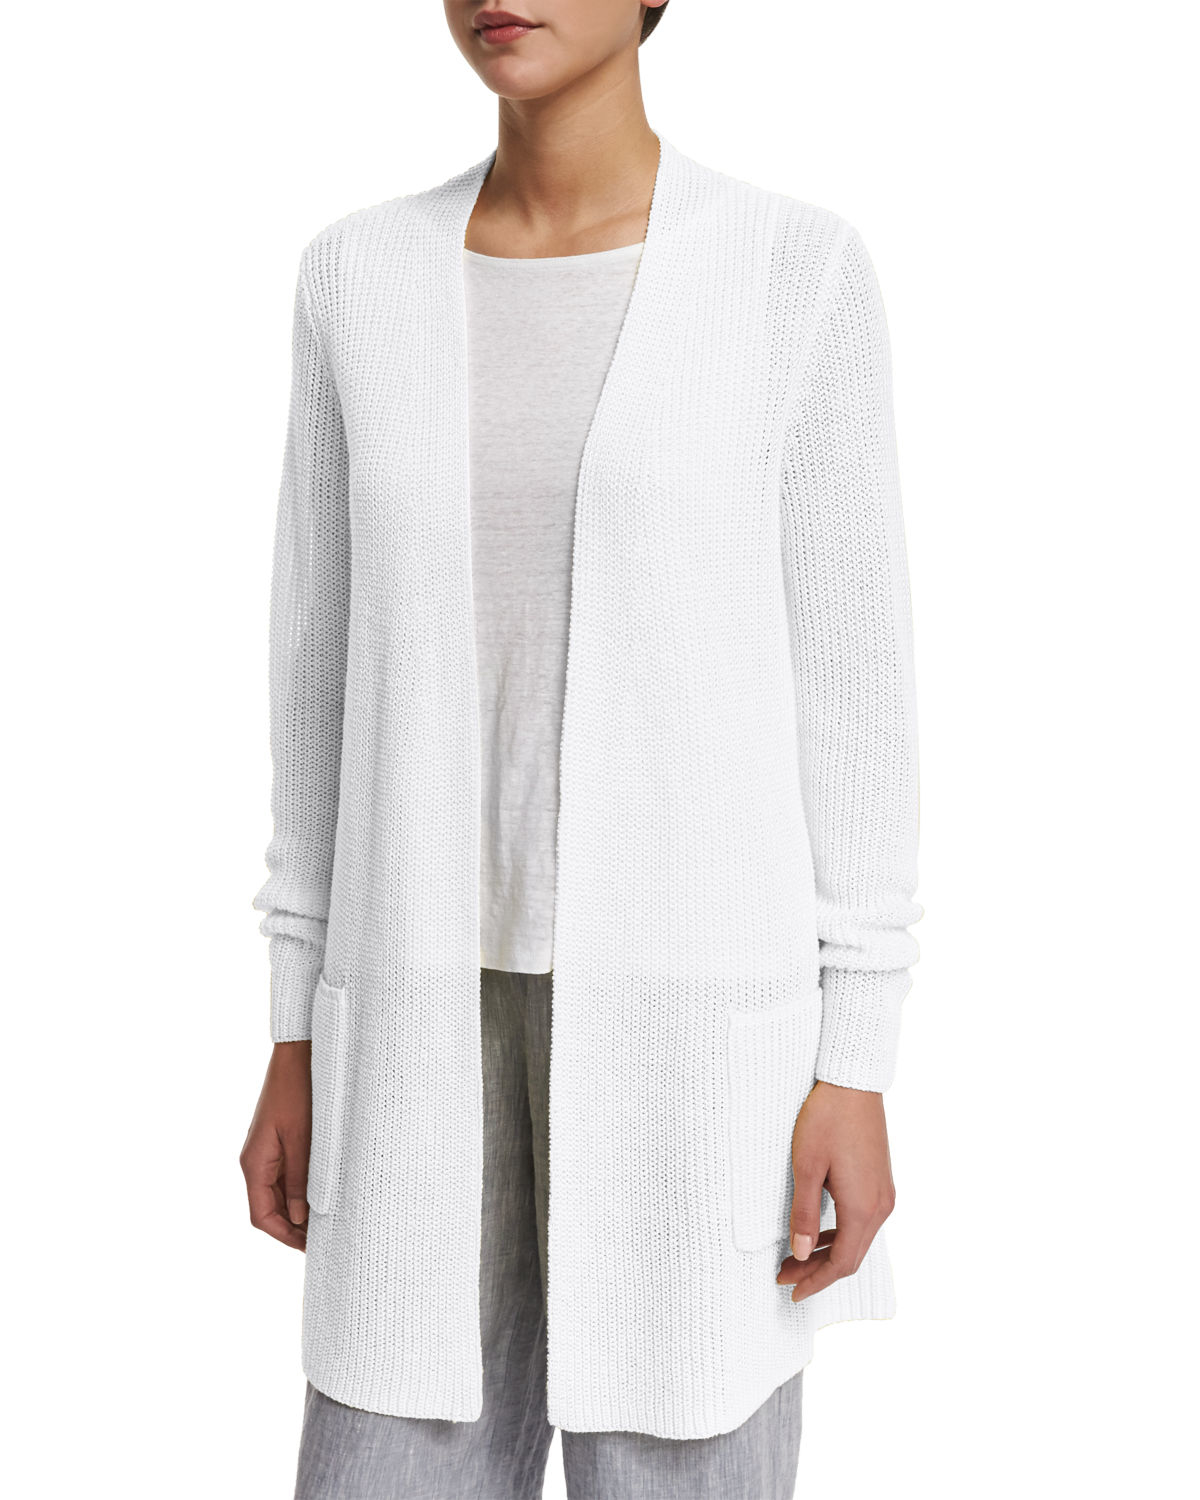 Find great deals on eBay for long white cardigan. Shop with confidence.